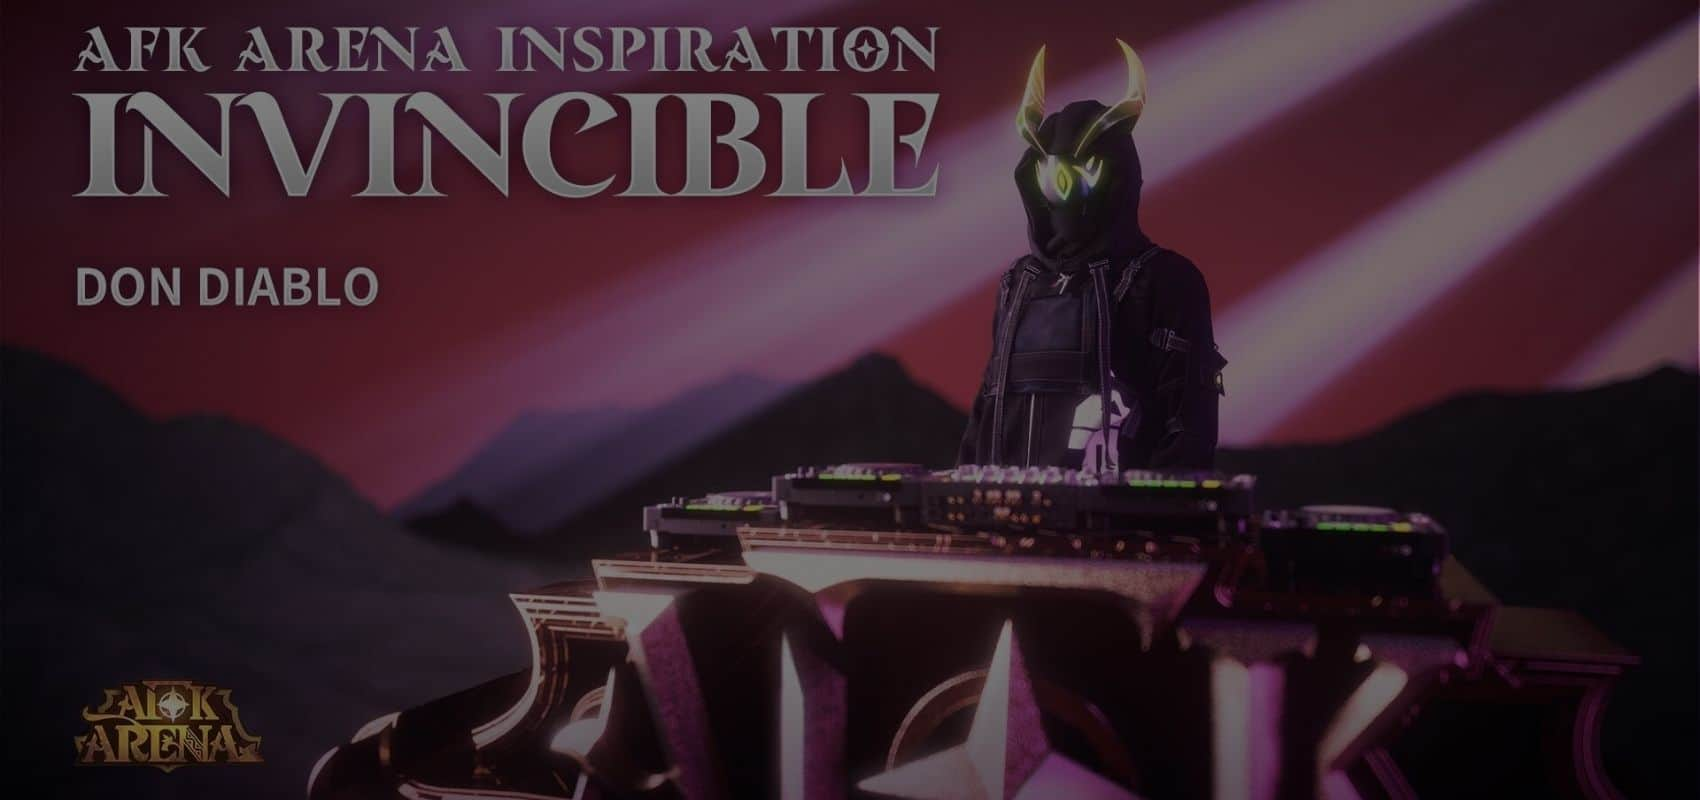 AFK Arena collaborates with top DJ, Don Diablo for new track 'Invincible'